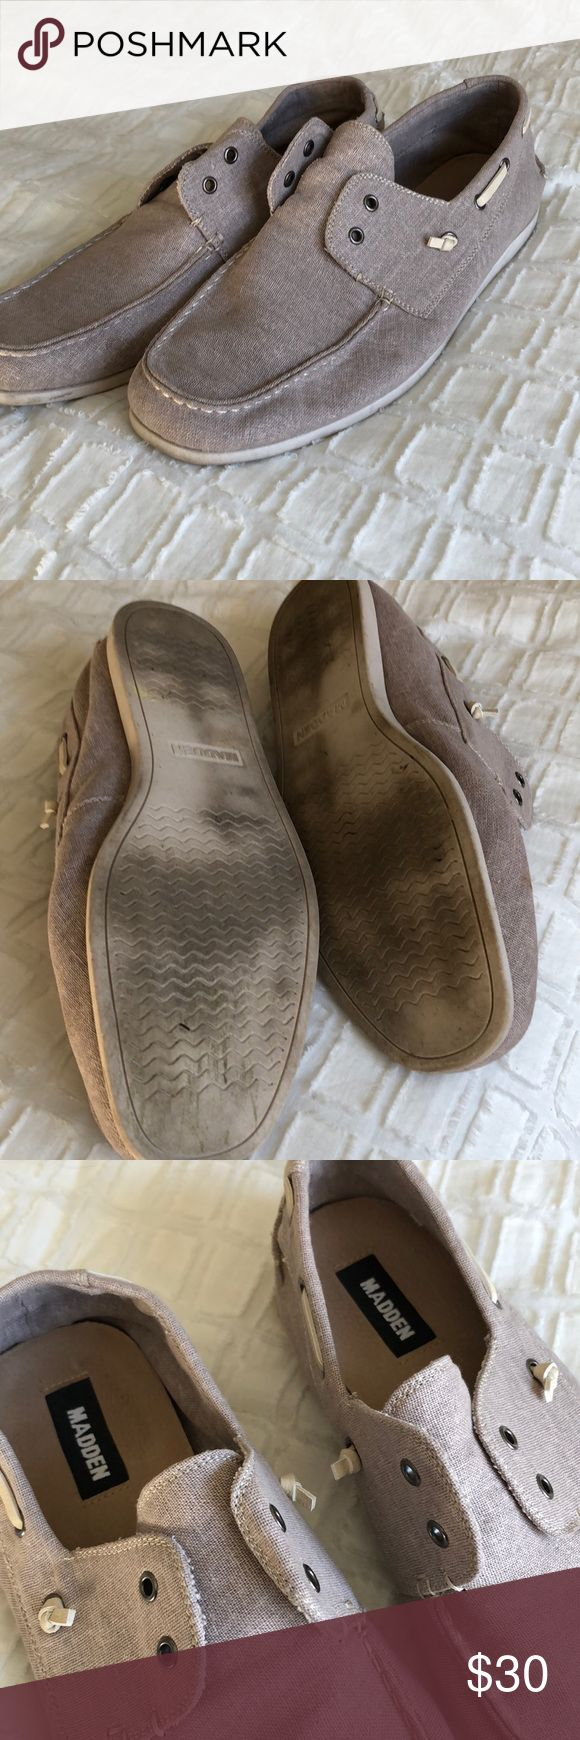 Men's boat shoes Khaki leggings colored canvas boat shoes. Worn a few times. No stain scratches or marks Steve Madden Shoes Boat Shoes